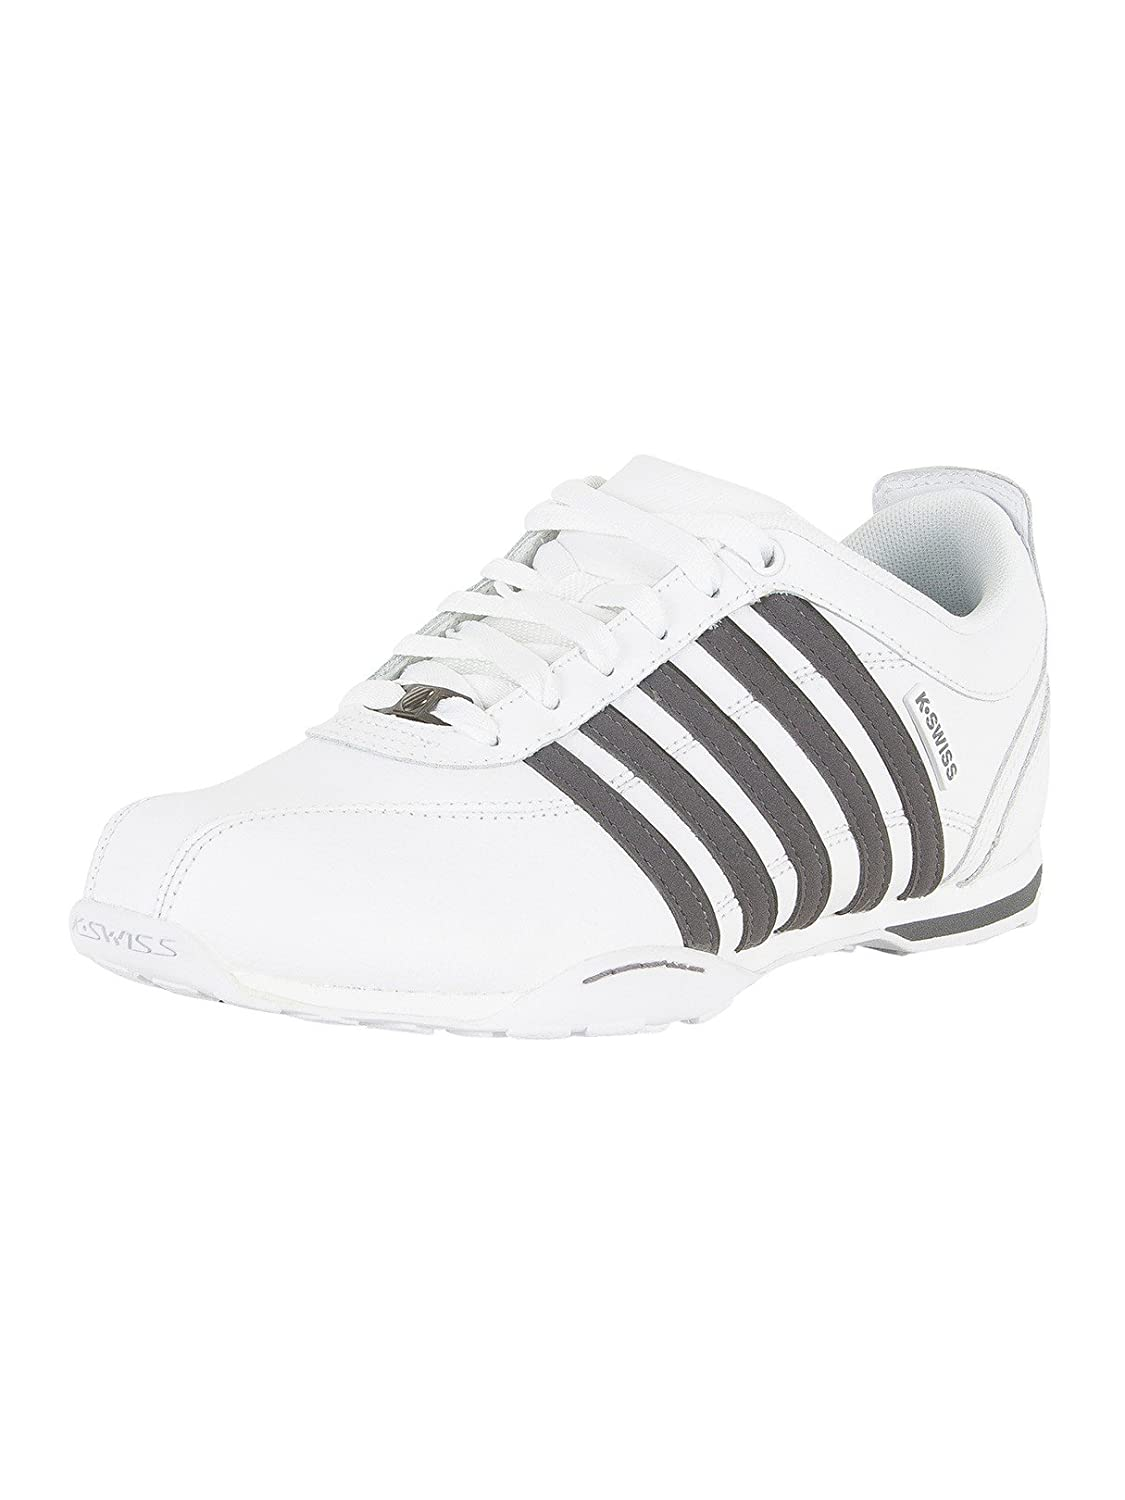 k swiss shoes price philippines bathtub picture and prices